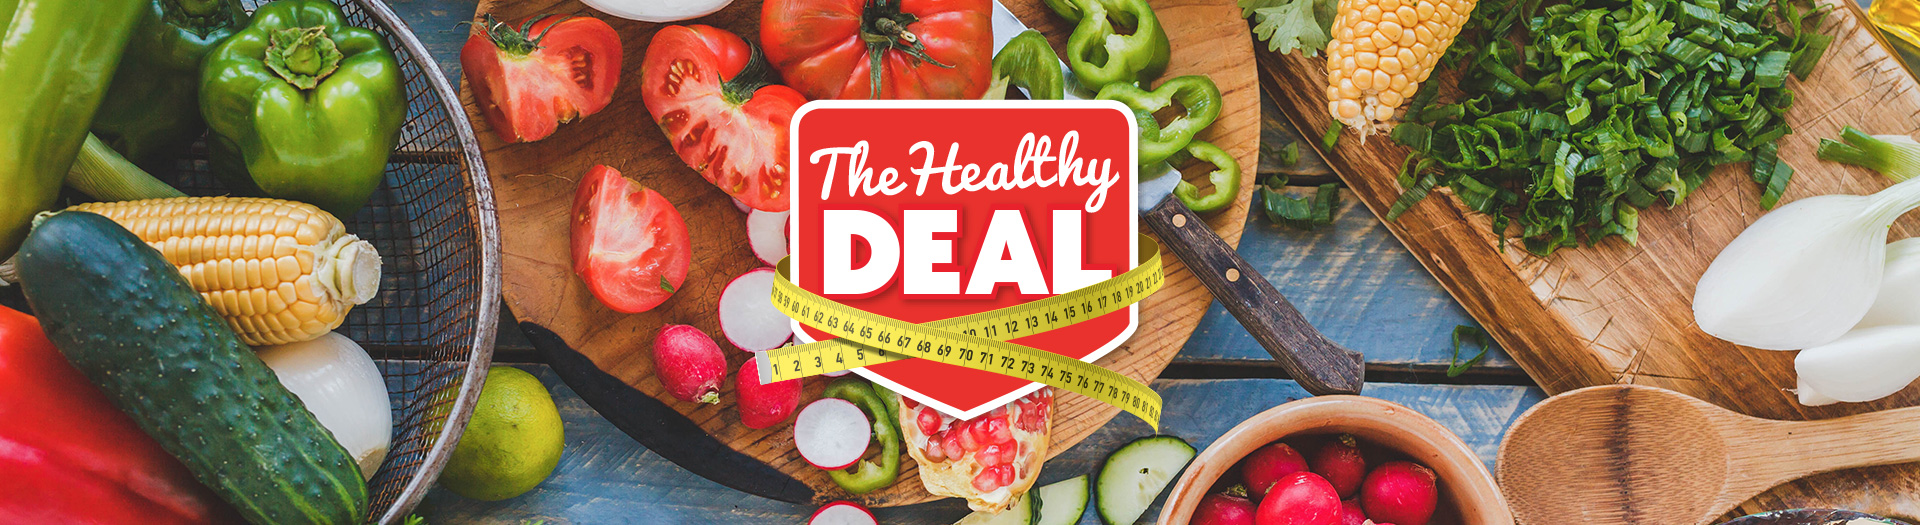 The Healthy Deal